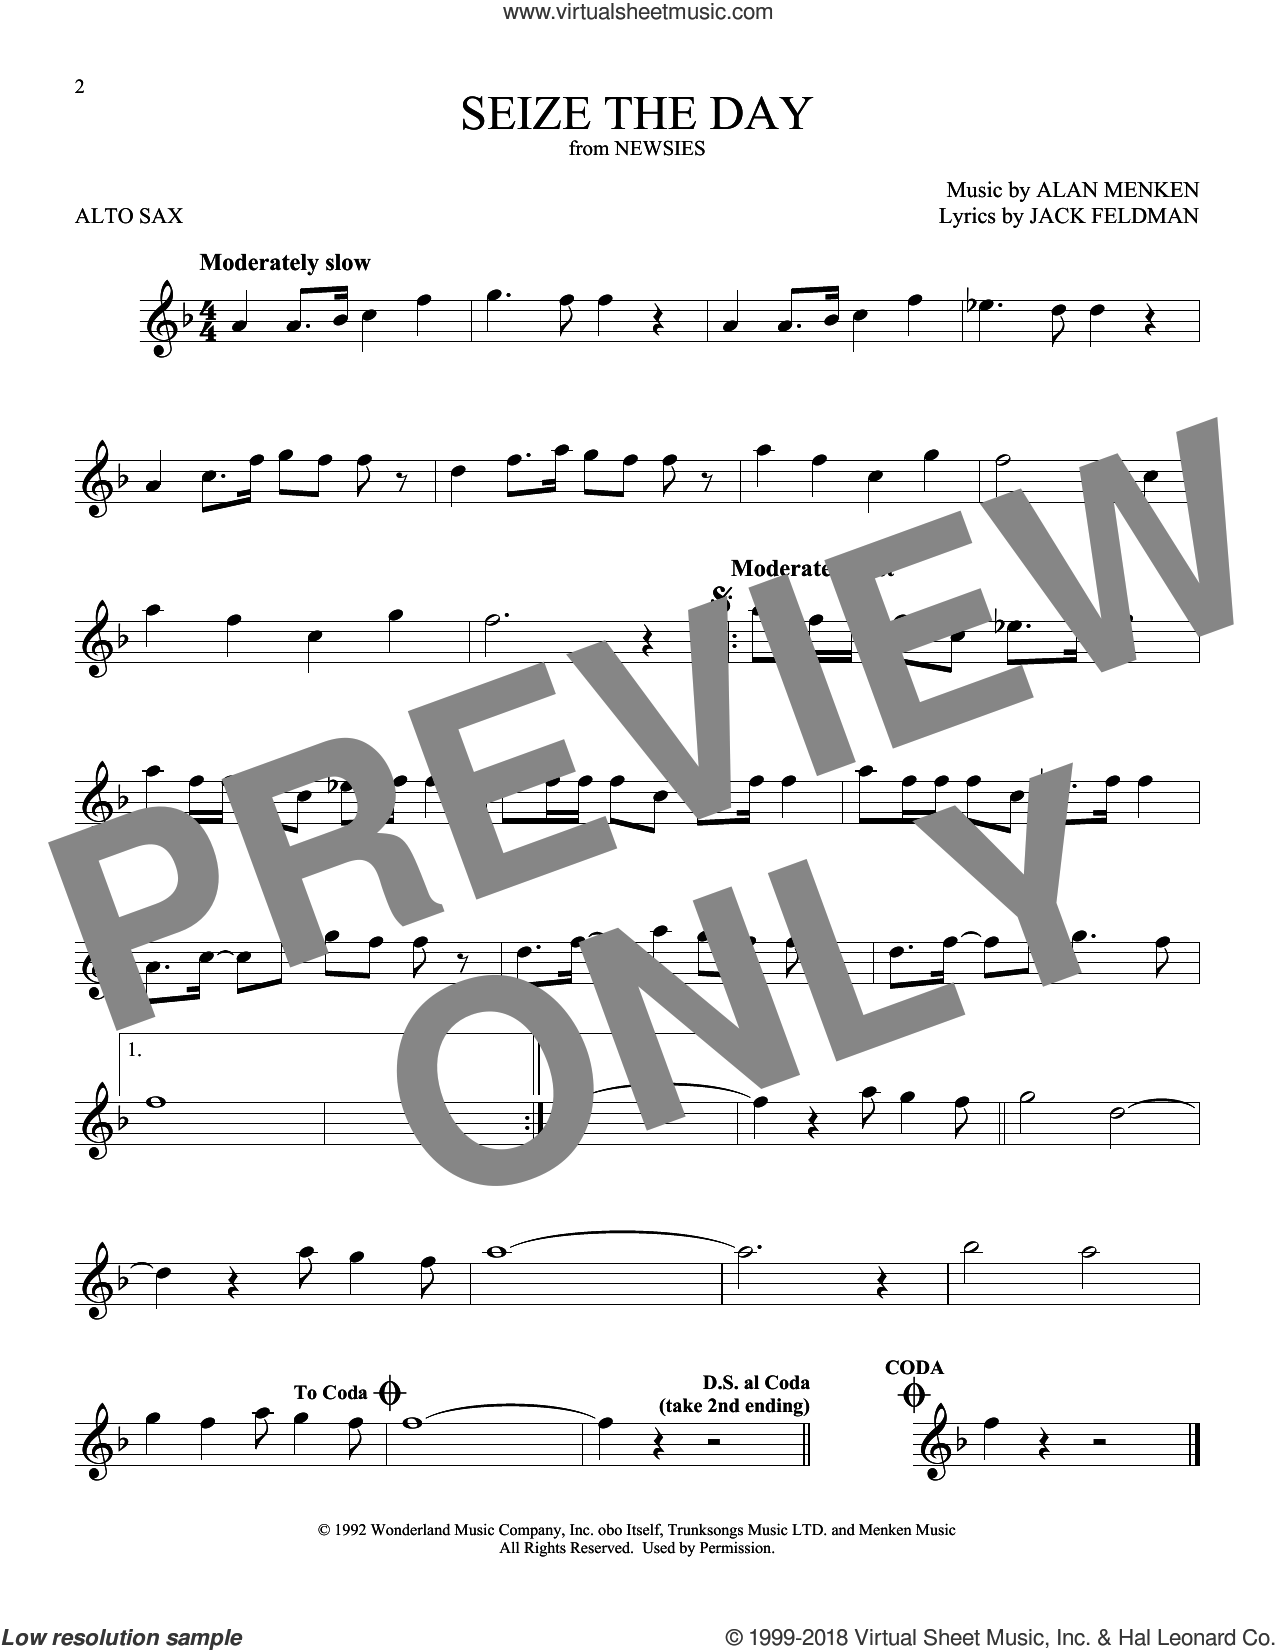 Seize The Day (from Newsies) sheet music for alto saxophone solo by Alan Menken and Jack Feldman, intermediate skill level